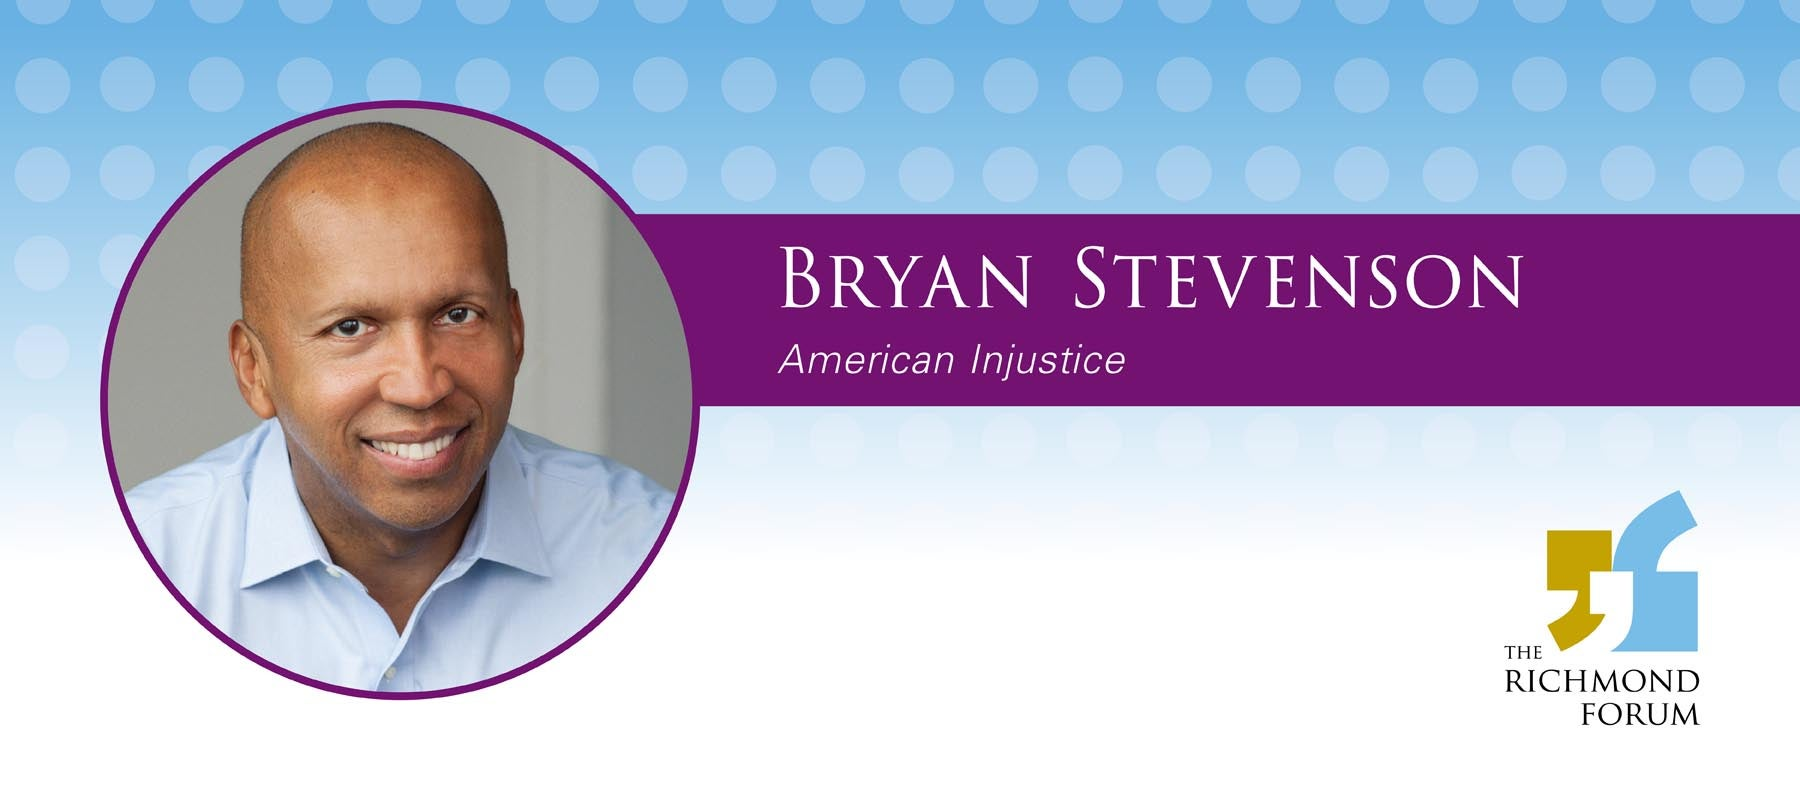 POSTPONED: The Richmond Forum Presents Bryan Stevenson